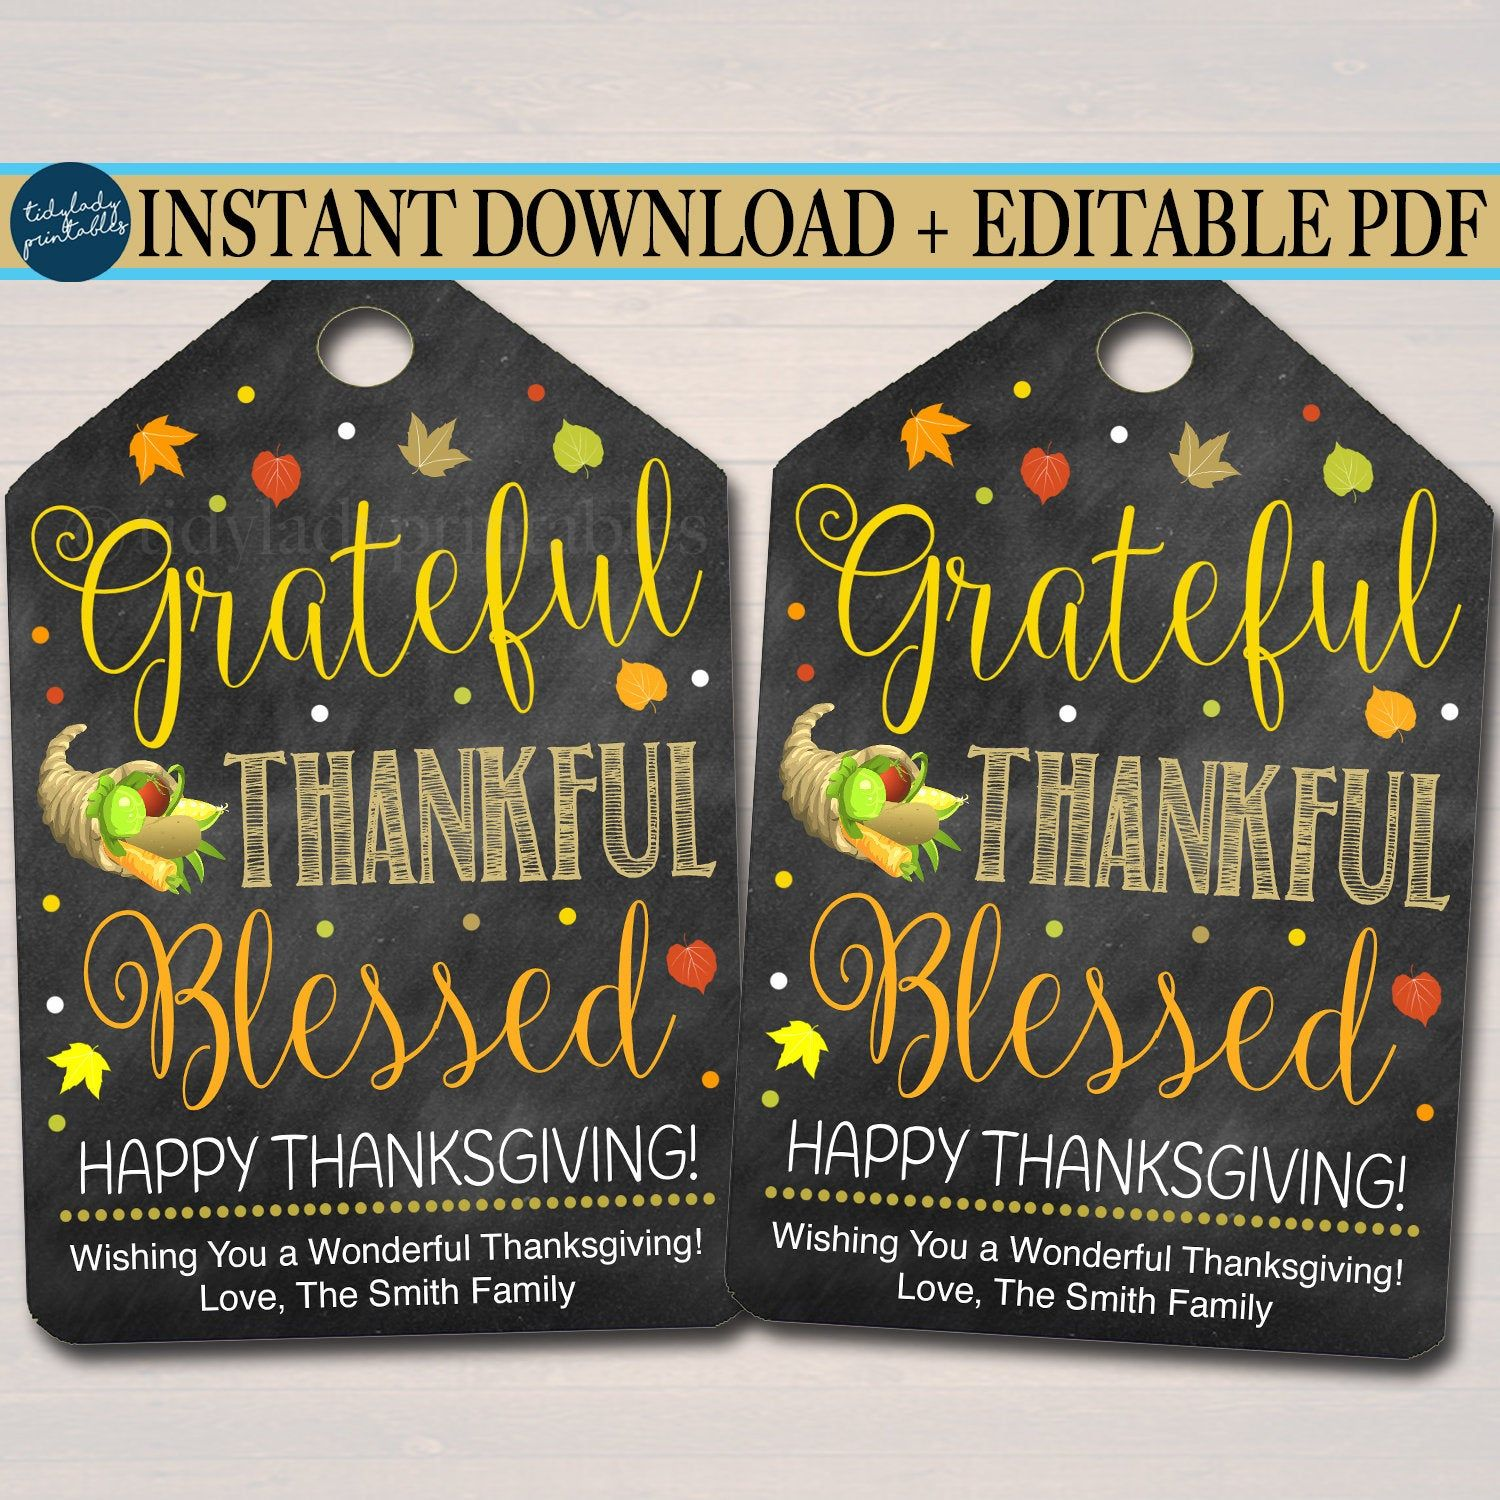 Thanksgiving Gift Tags, Grateful Thankful Blessed, Holiday Fall Staff Teacher Volunteer Gift, Printable Bakery INSTANT DOWNLOAD Editable Pdf #thanksgivinggiftsforteachers